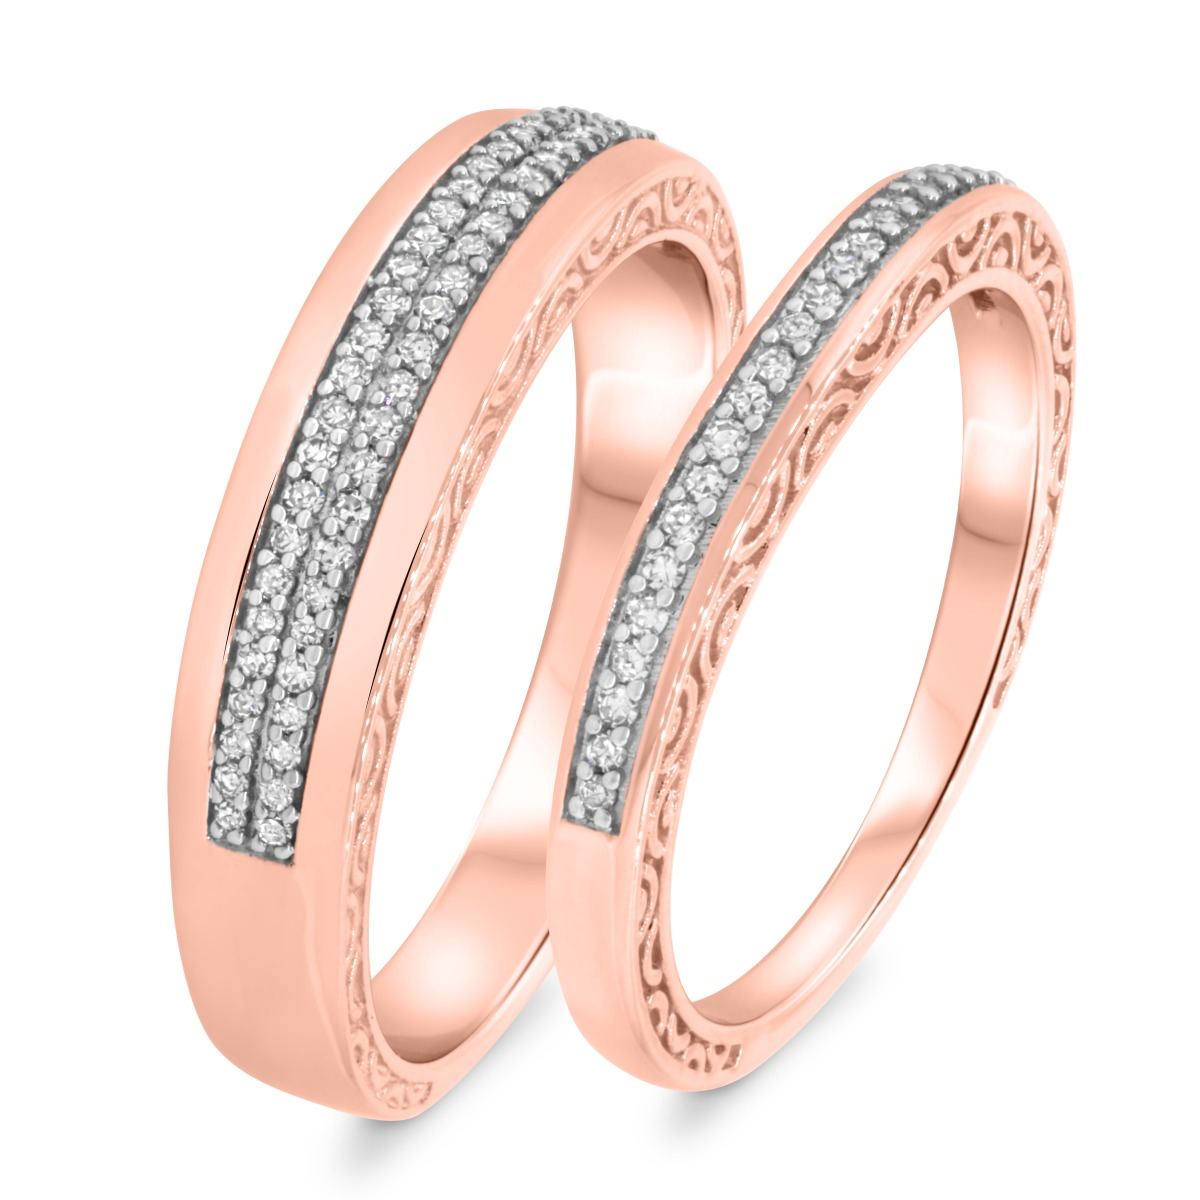 1/3 CT. T.W. Diamond Matching Wedding Band Set 10K Rose Gold